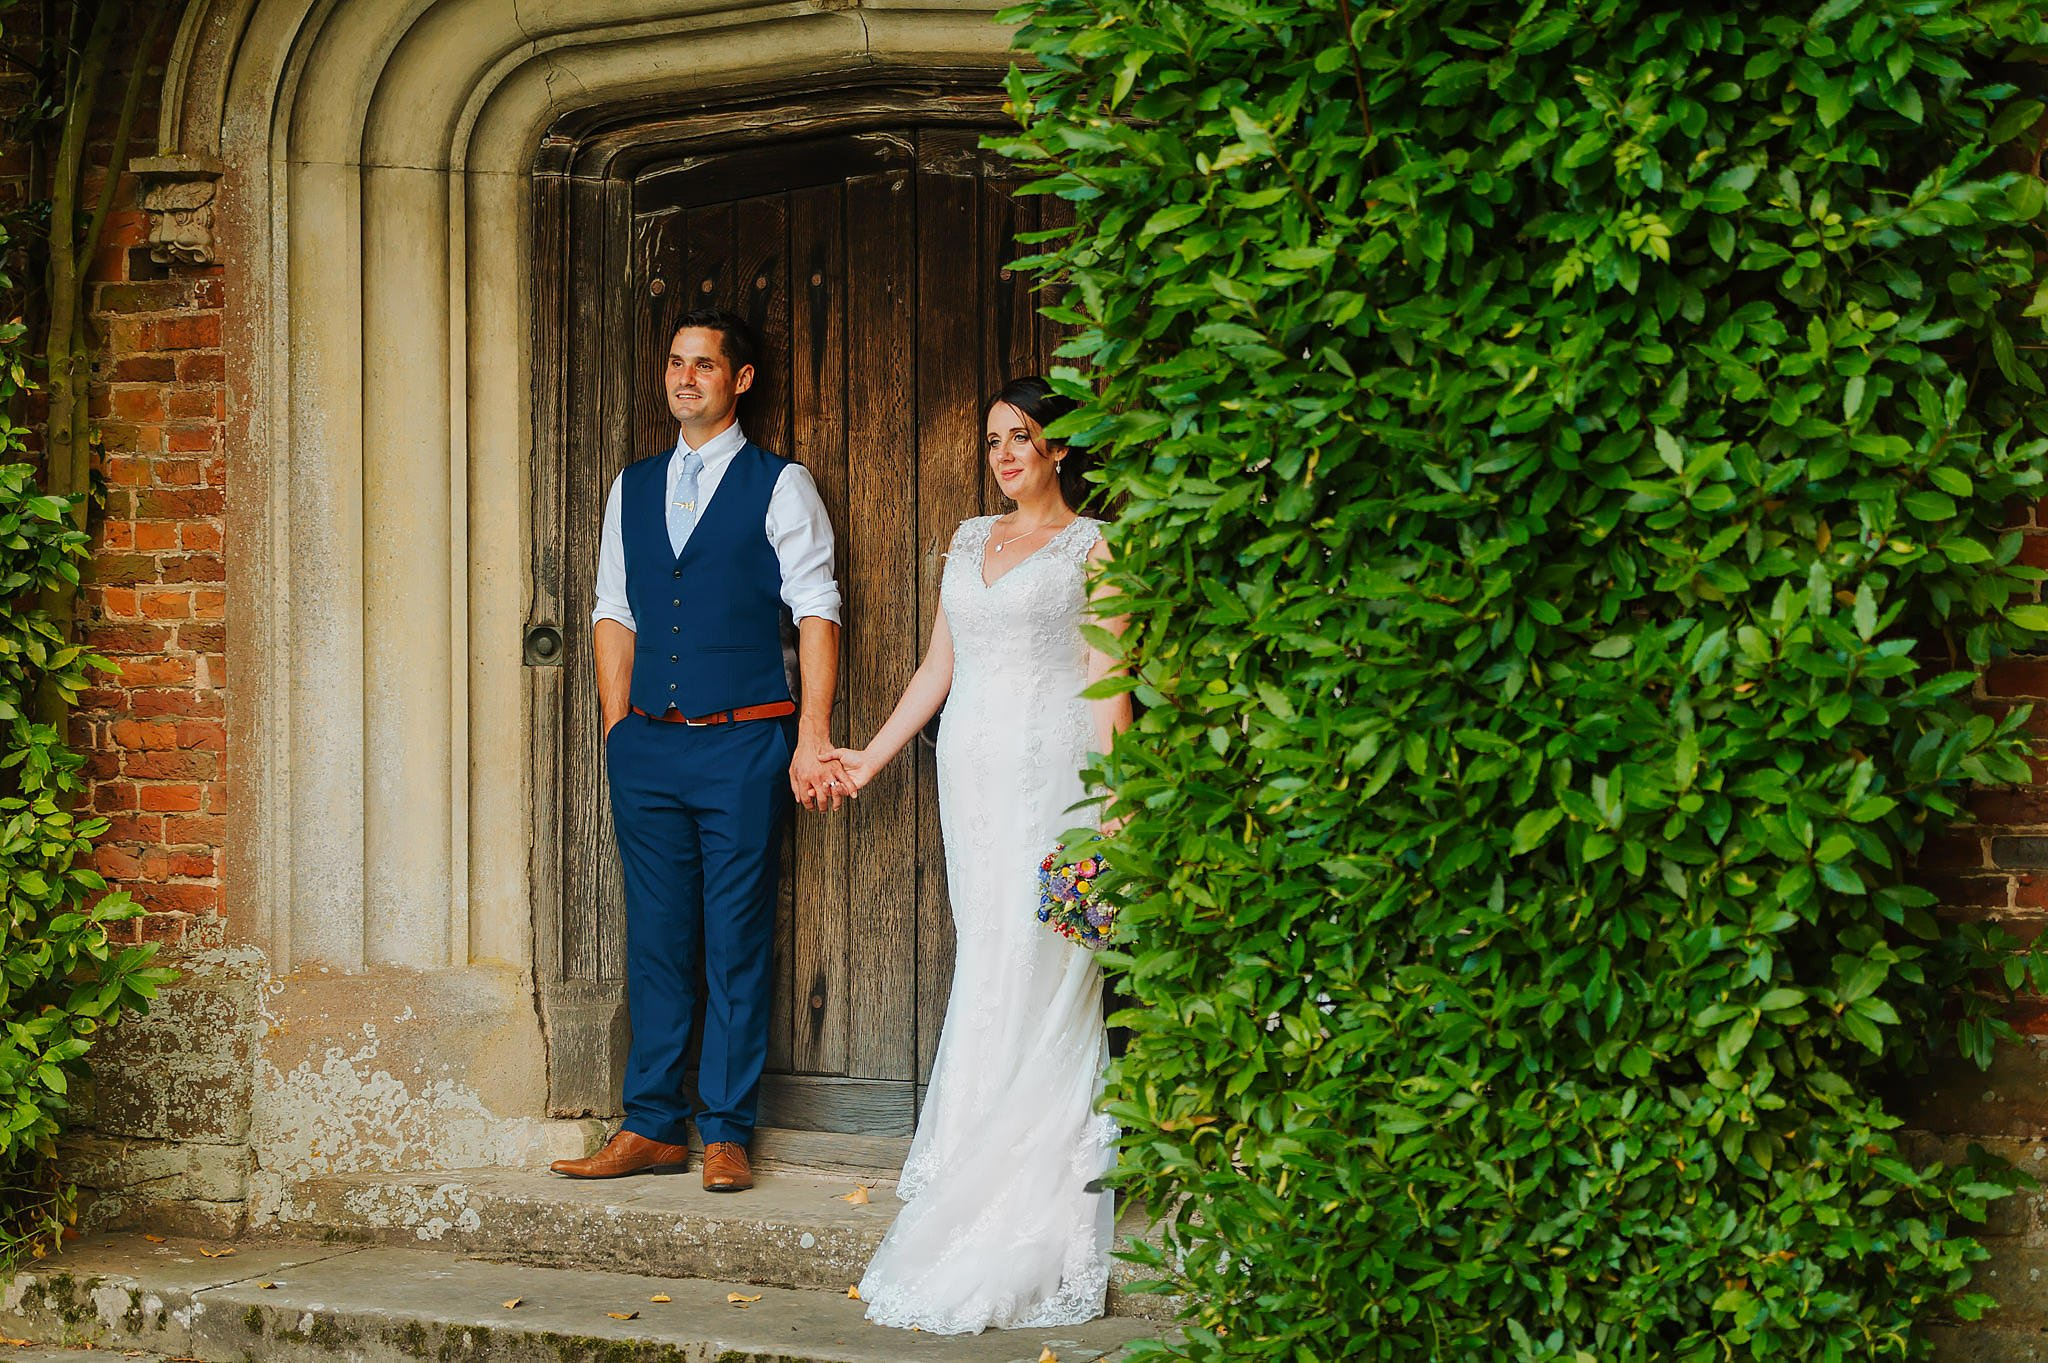 Wedding photography at Hellens Manor in Herefordshire, West Midlands | Shelley + Ian 112